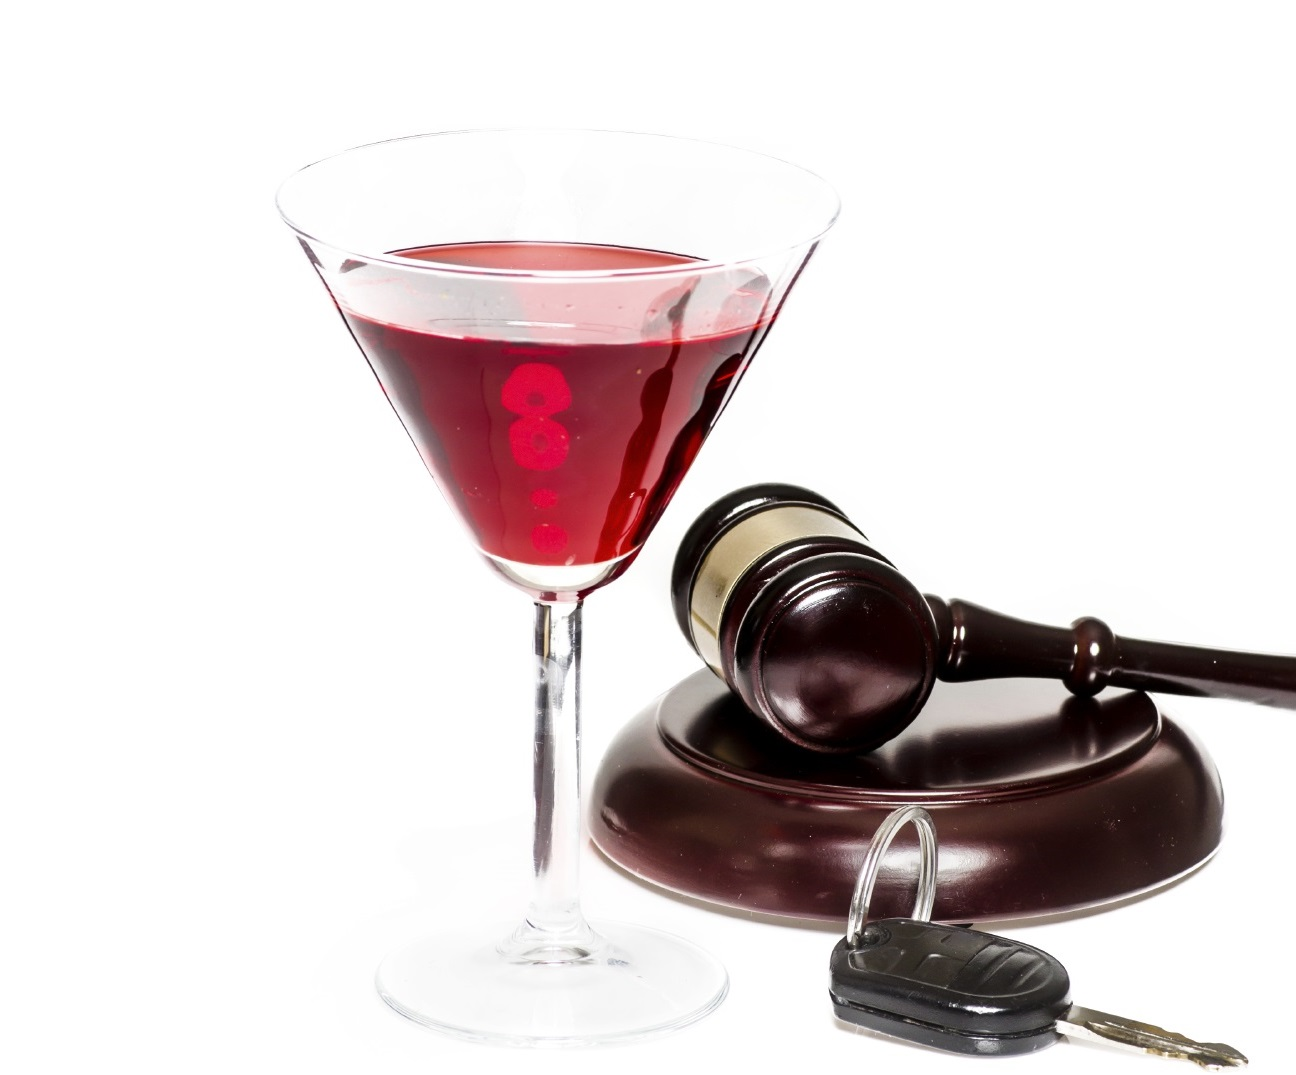 Martini glass with red liquid, gavel and car keys on a white background